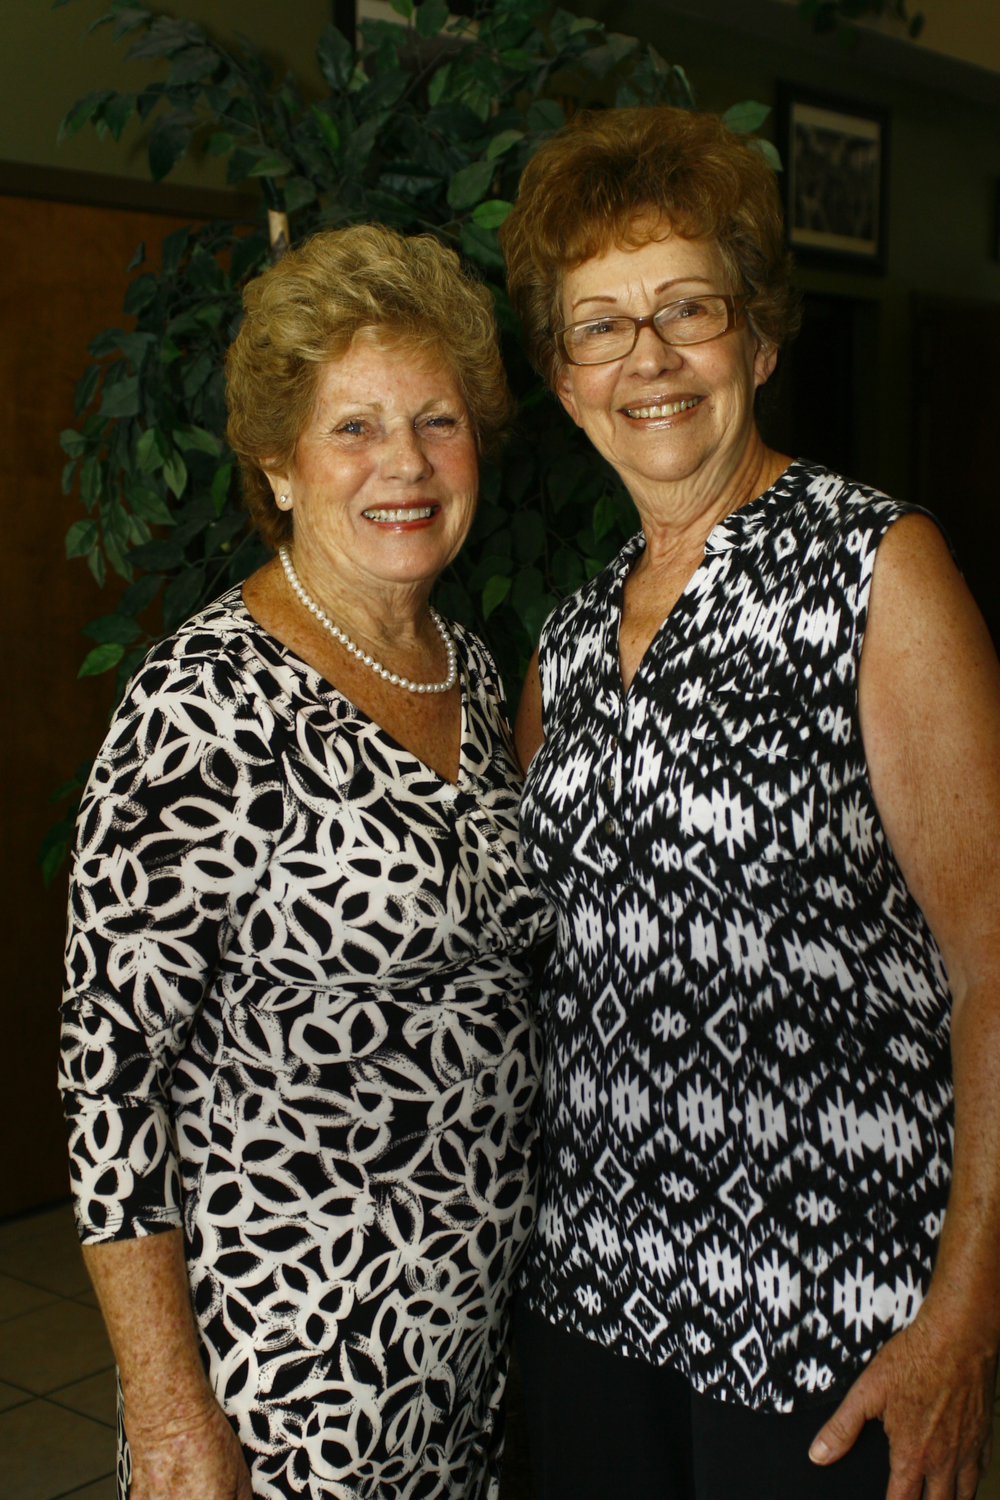 Pictured: left, Shirley beckwith  right, janette carnette